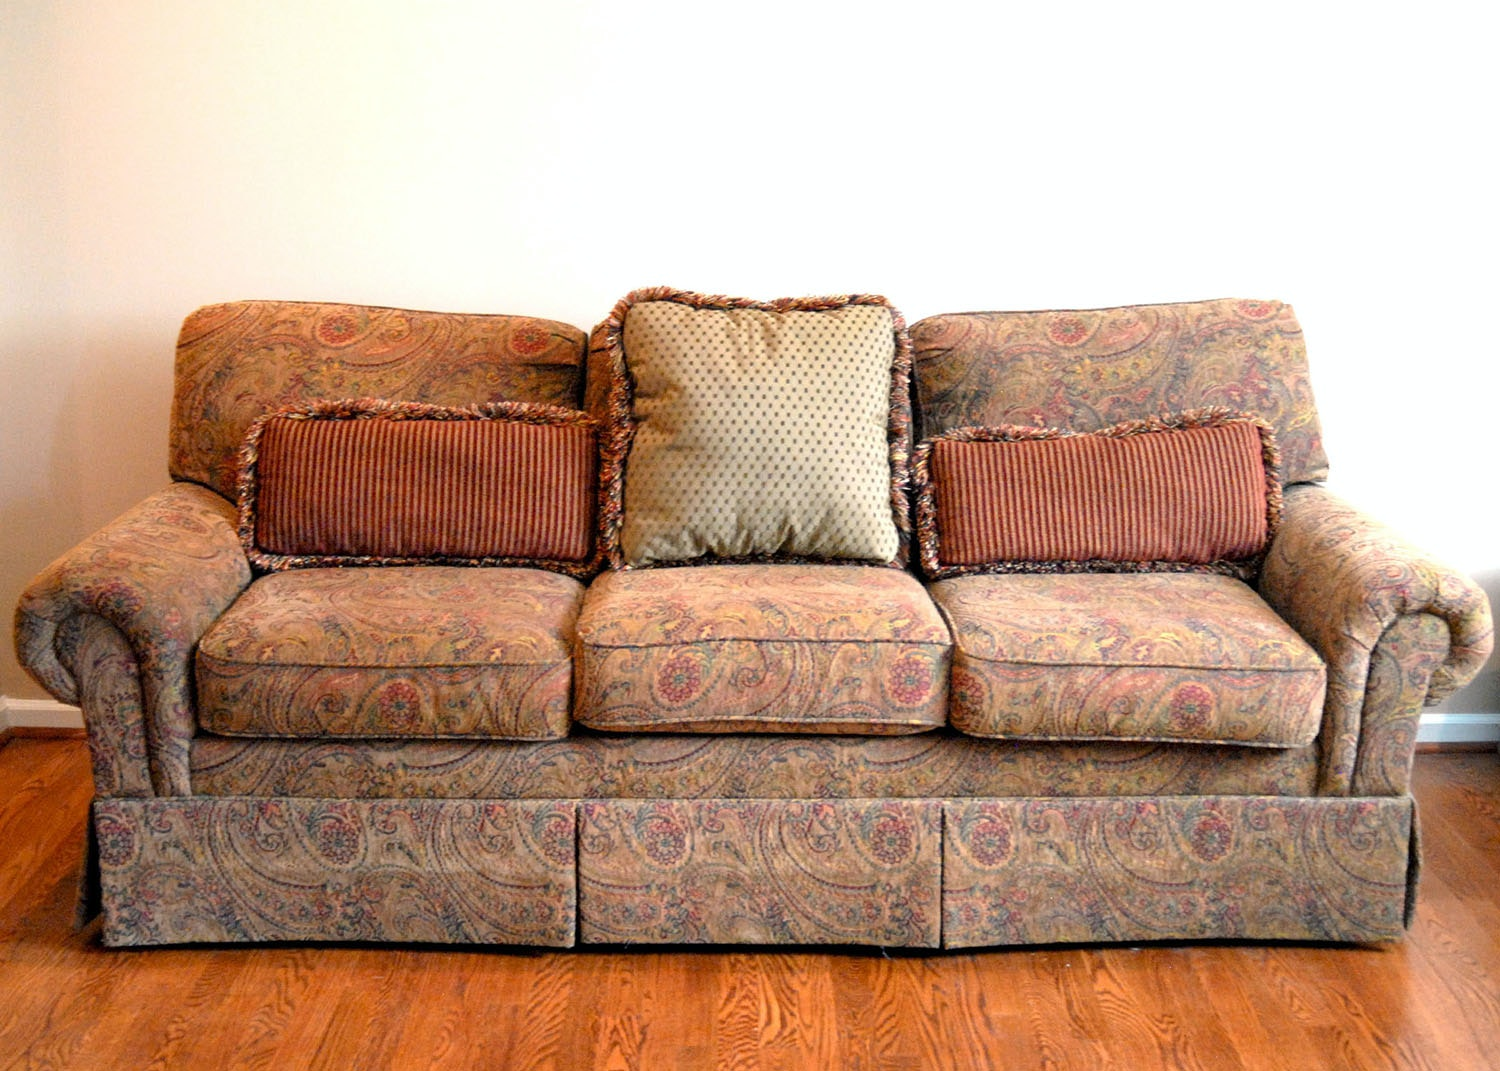 Vintage Floral Print Norwalk Furniture Couch ...